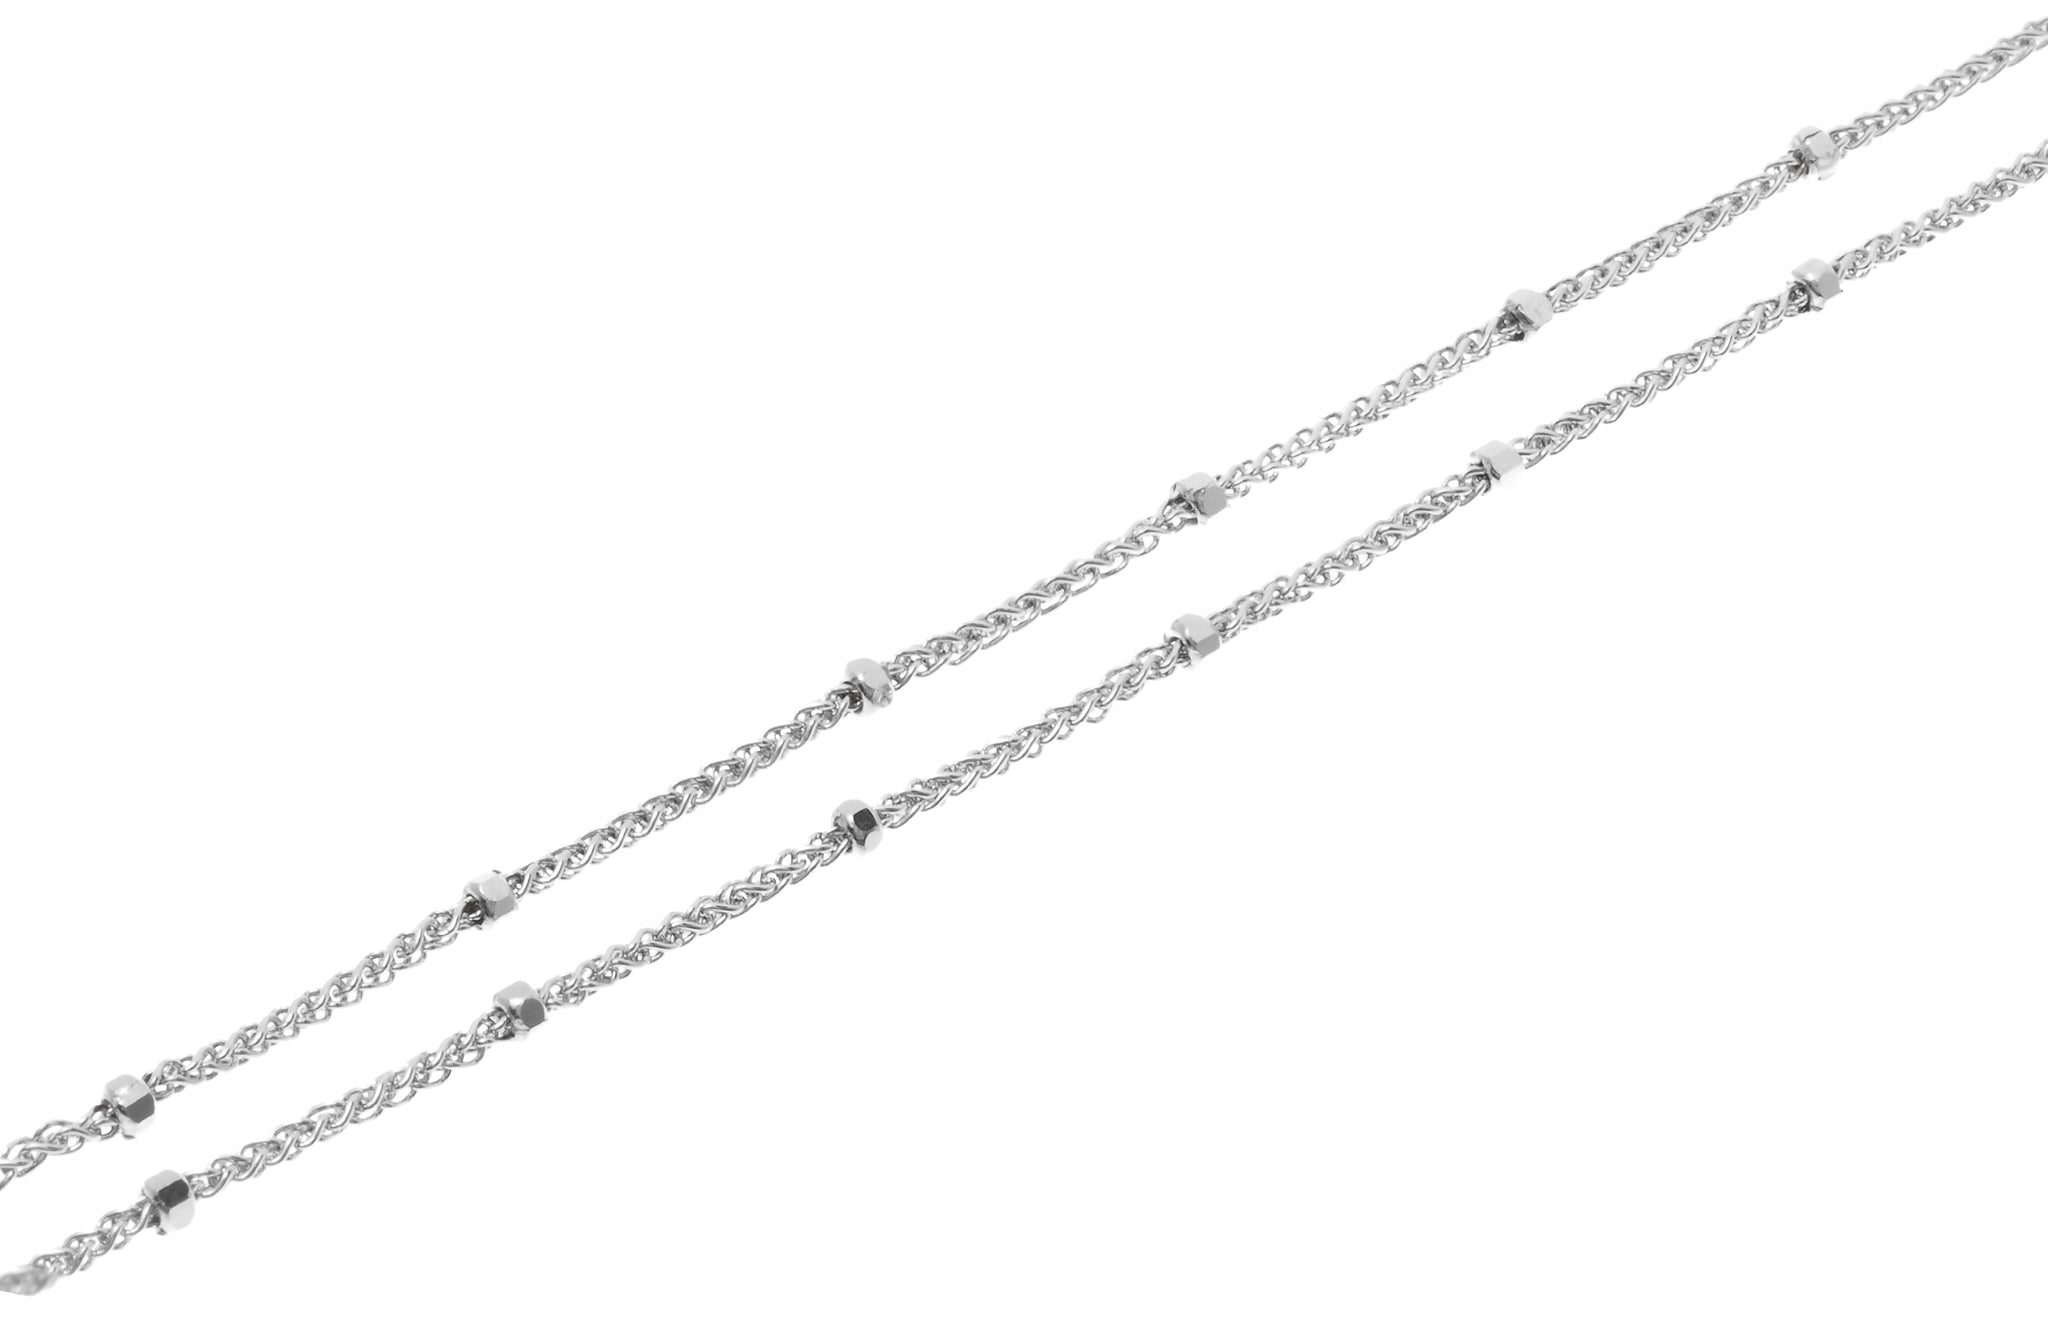 18ct White Gold Chain with Ring Clasp (3.02g) CH-10633